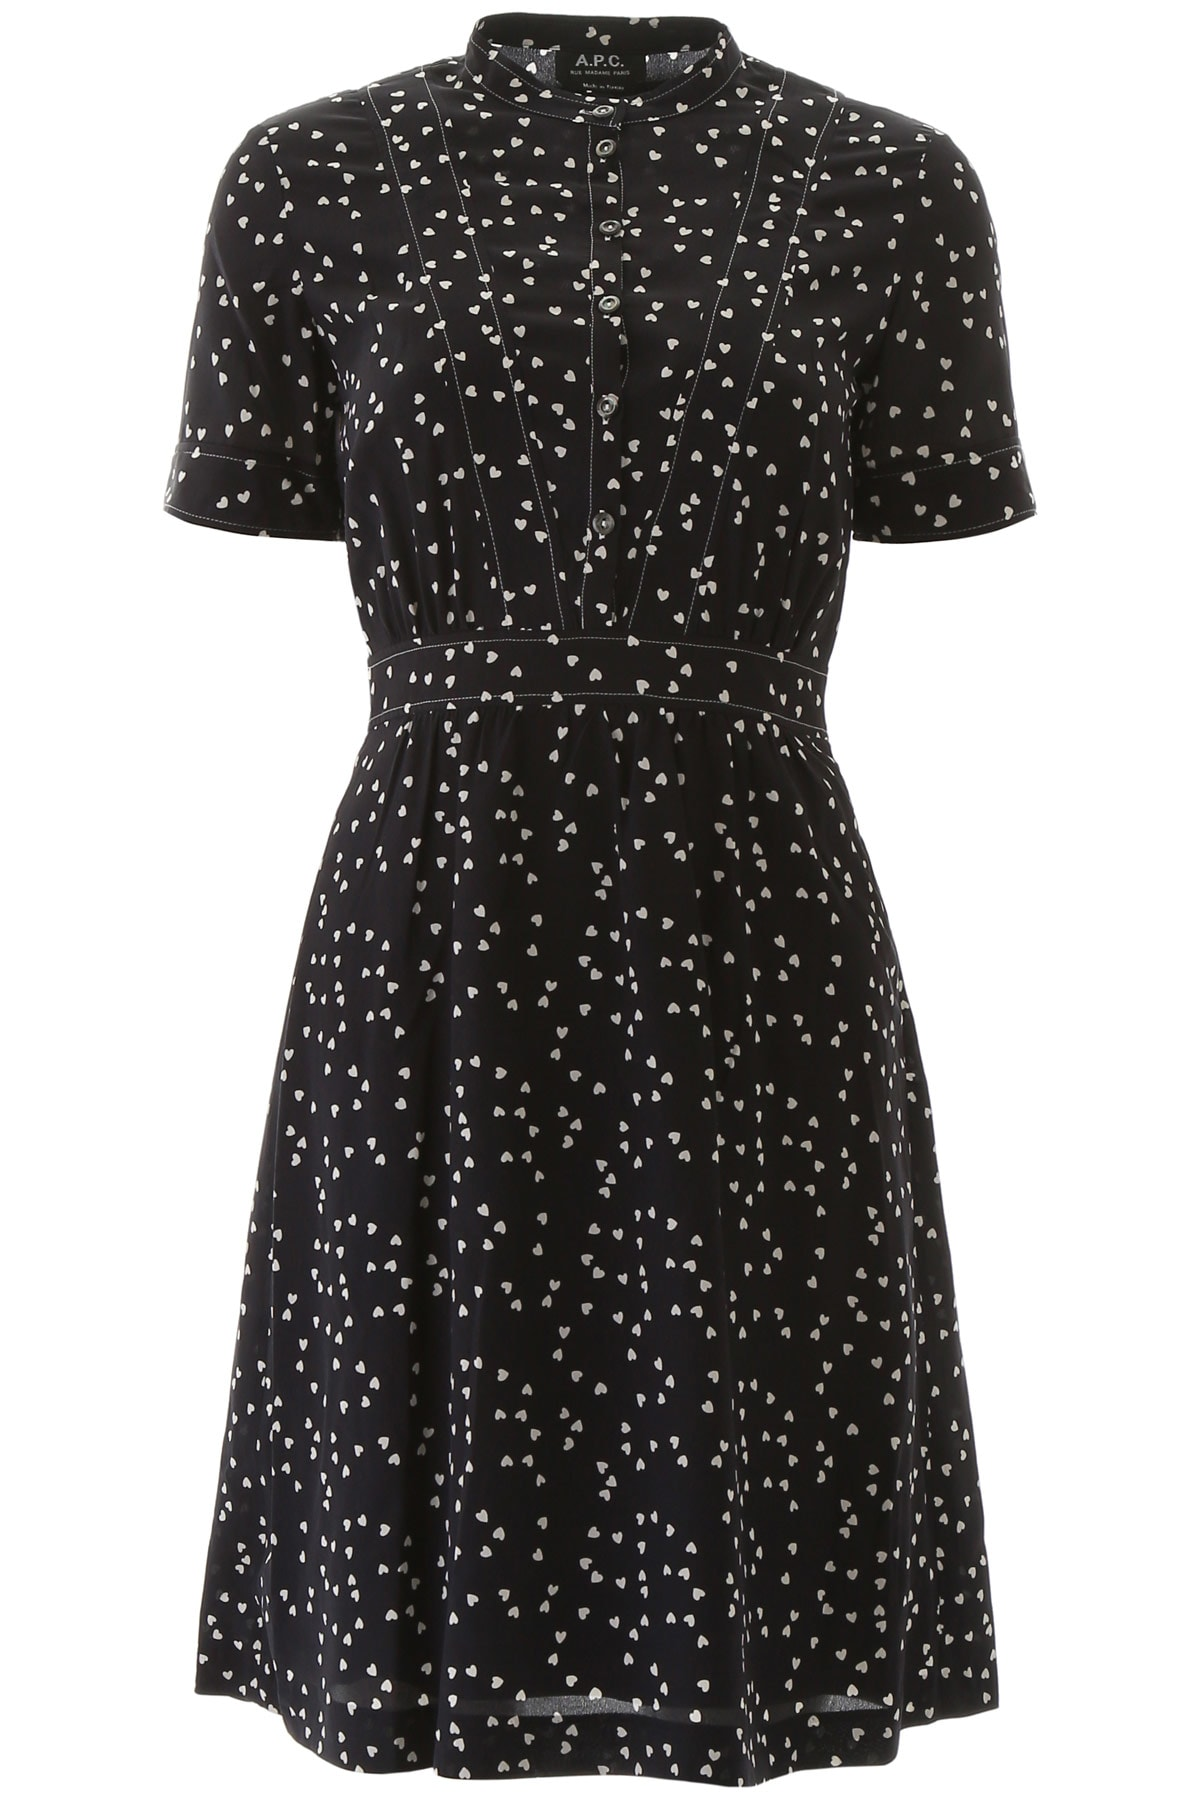 Buy A.P.C. Heart Print Dress online, shop A.P.C. with free shipping